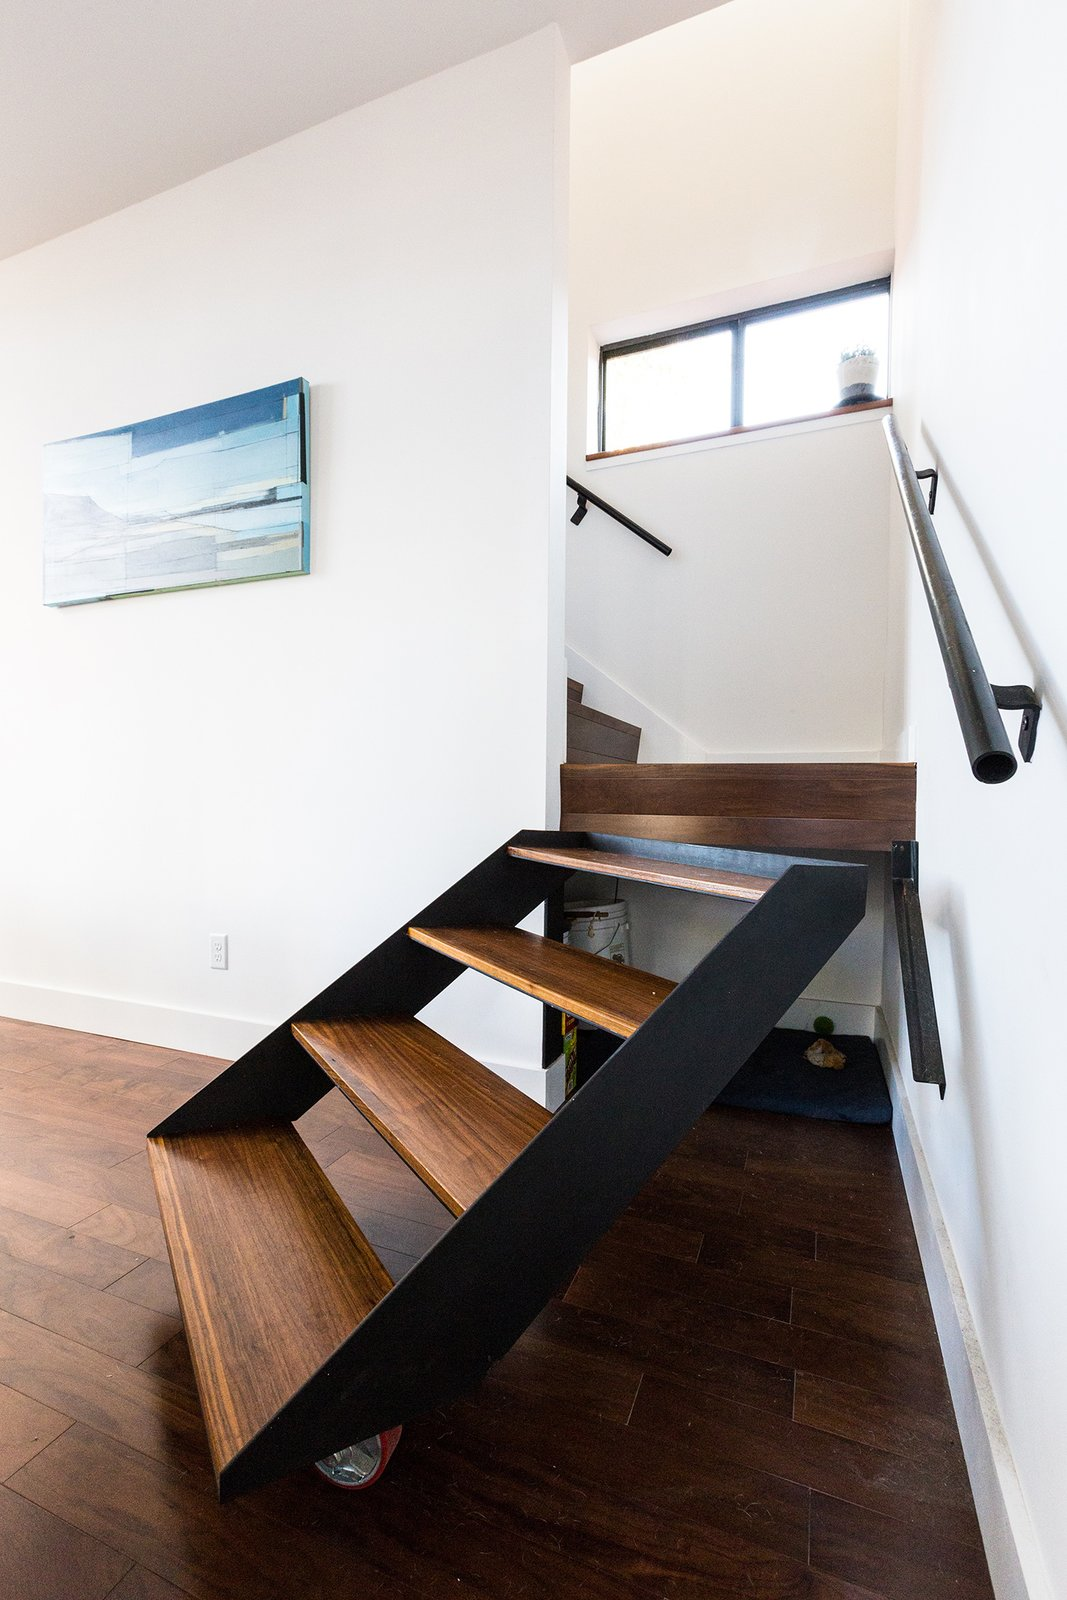 The architects, owners of a New Orleans design build firm, fabricated a pivoting stair to allow access to under stair storage. Painting by Tiffany Lin. Tagged: Storage Room and Under Stairs Storage Type.  Dorgenois by Emilie Taylor Welty